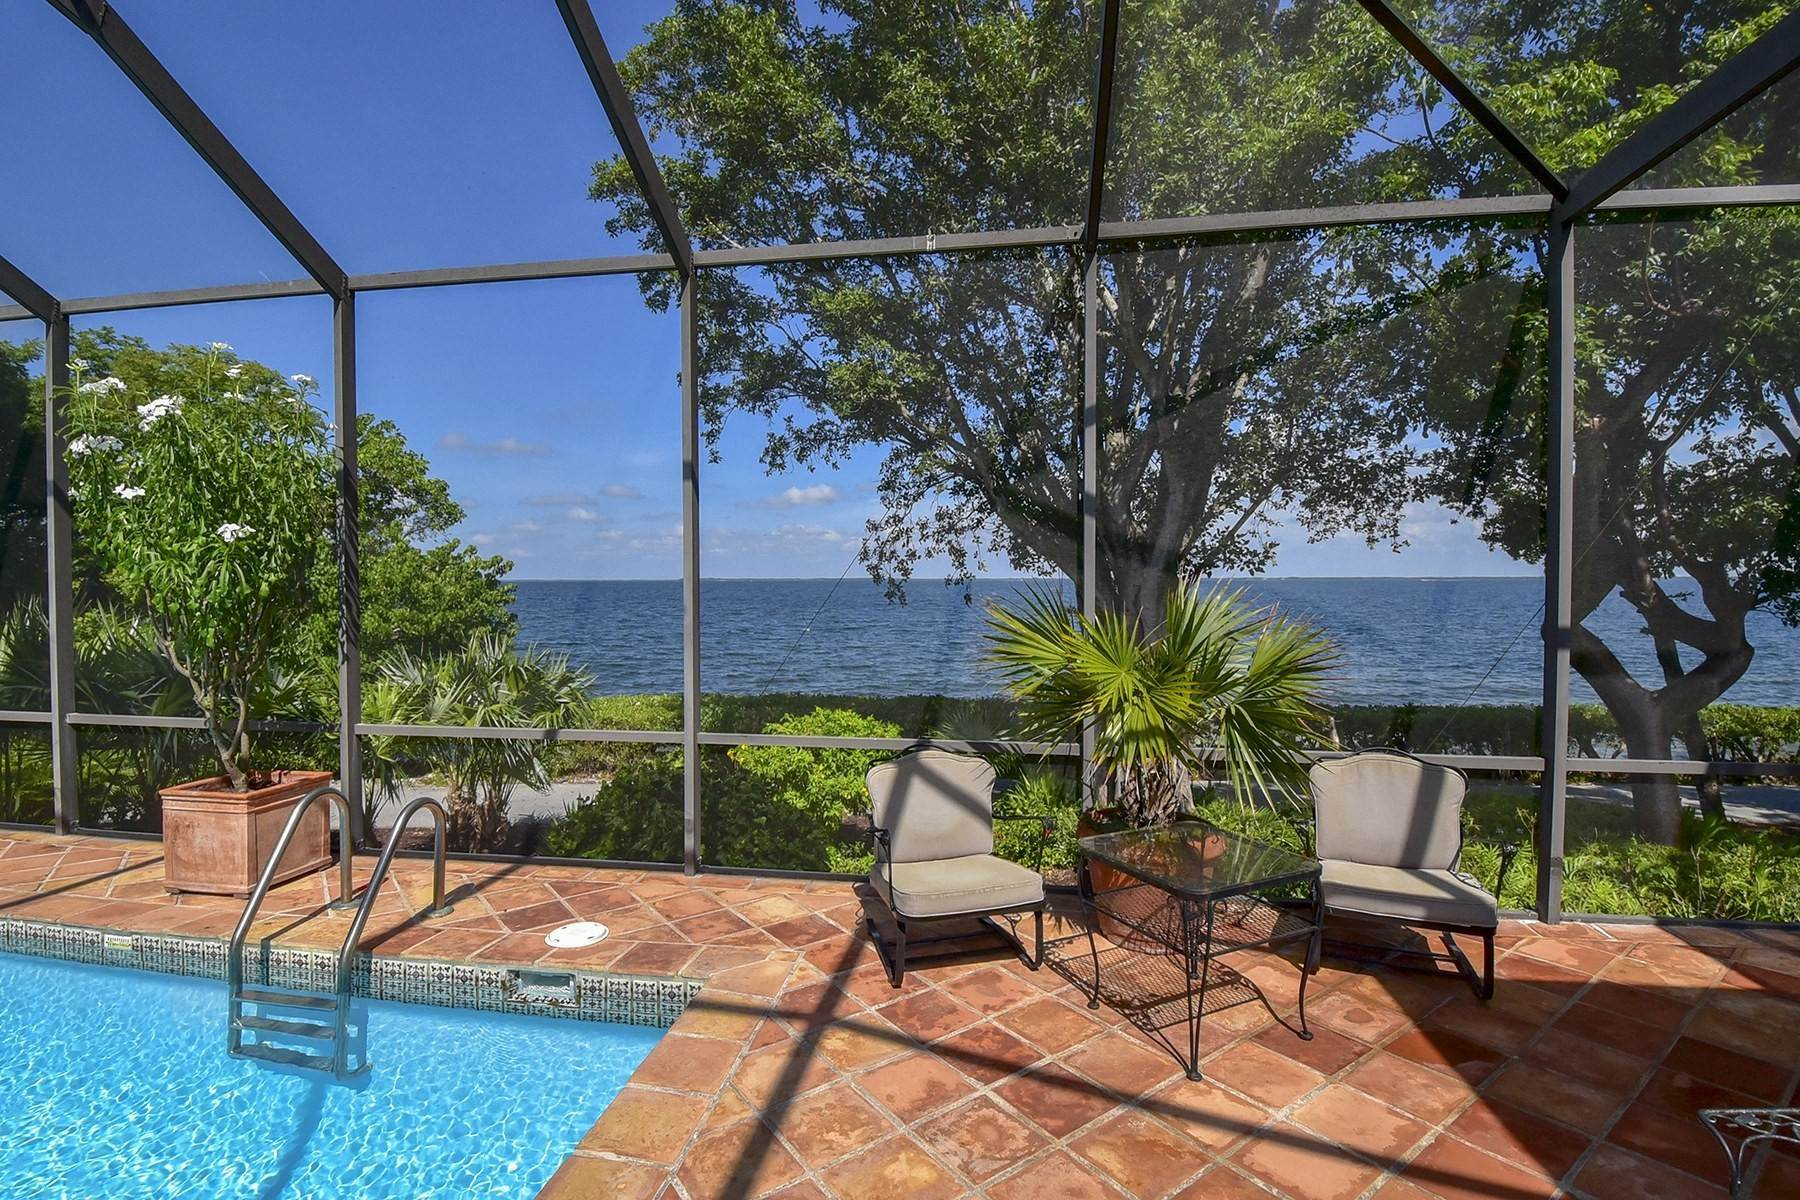 40. Property for Sale at 10 Cannon Point, Key Largo, FL 10 Cannon Point Key Largo, Florida 33037 United States